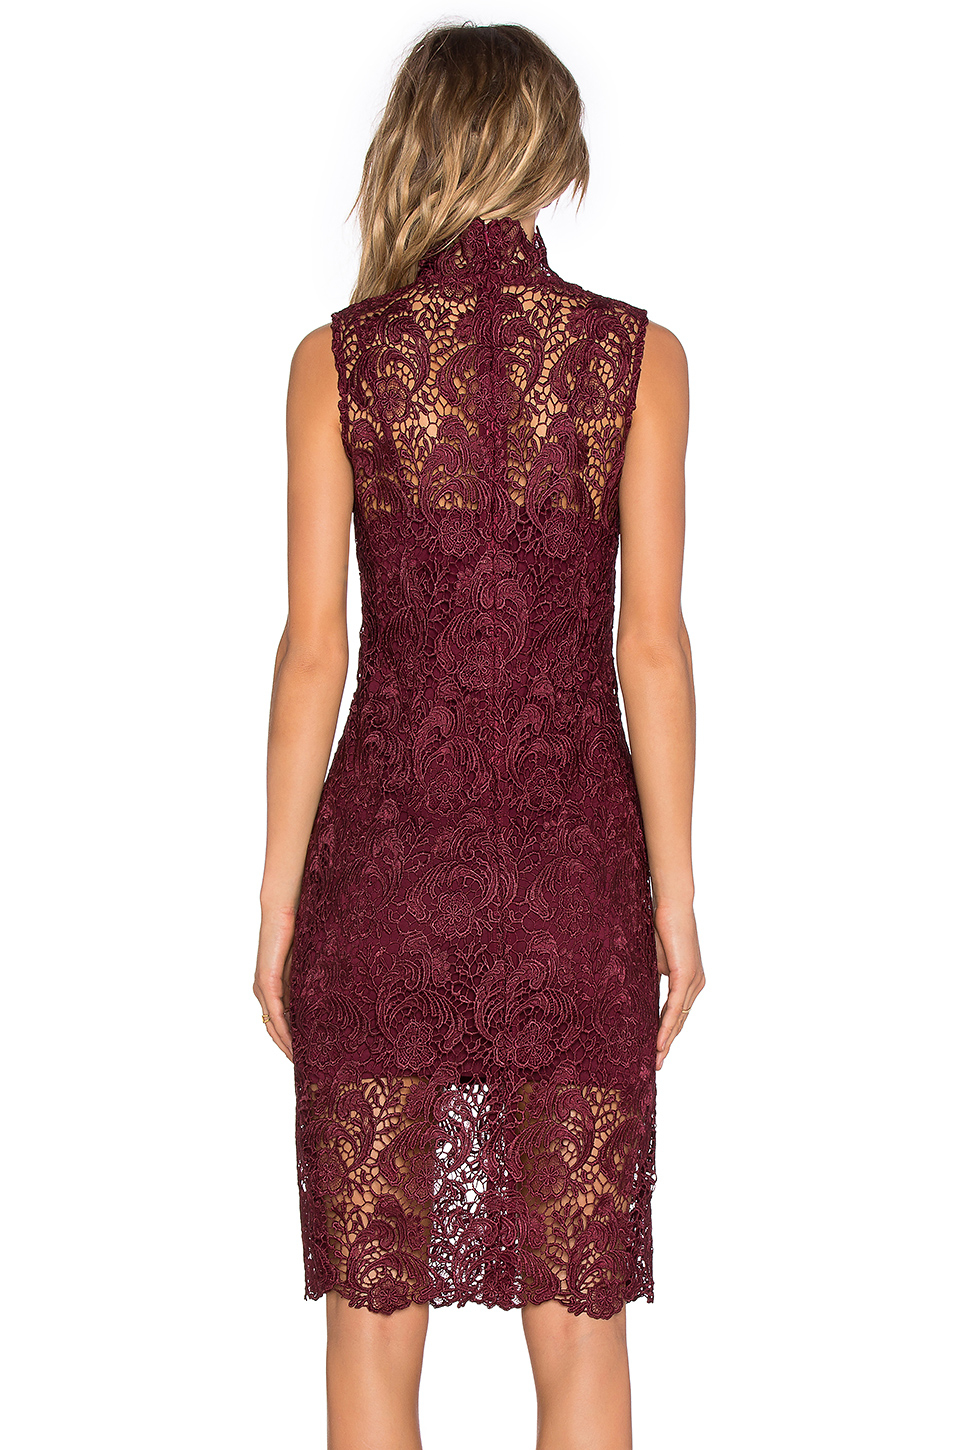 Blaque Label High Neck Lace Dress In Purple | Lyst